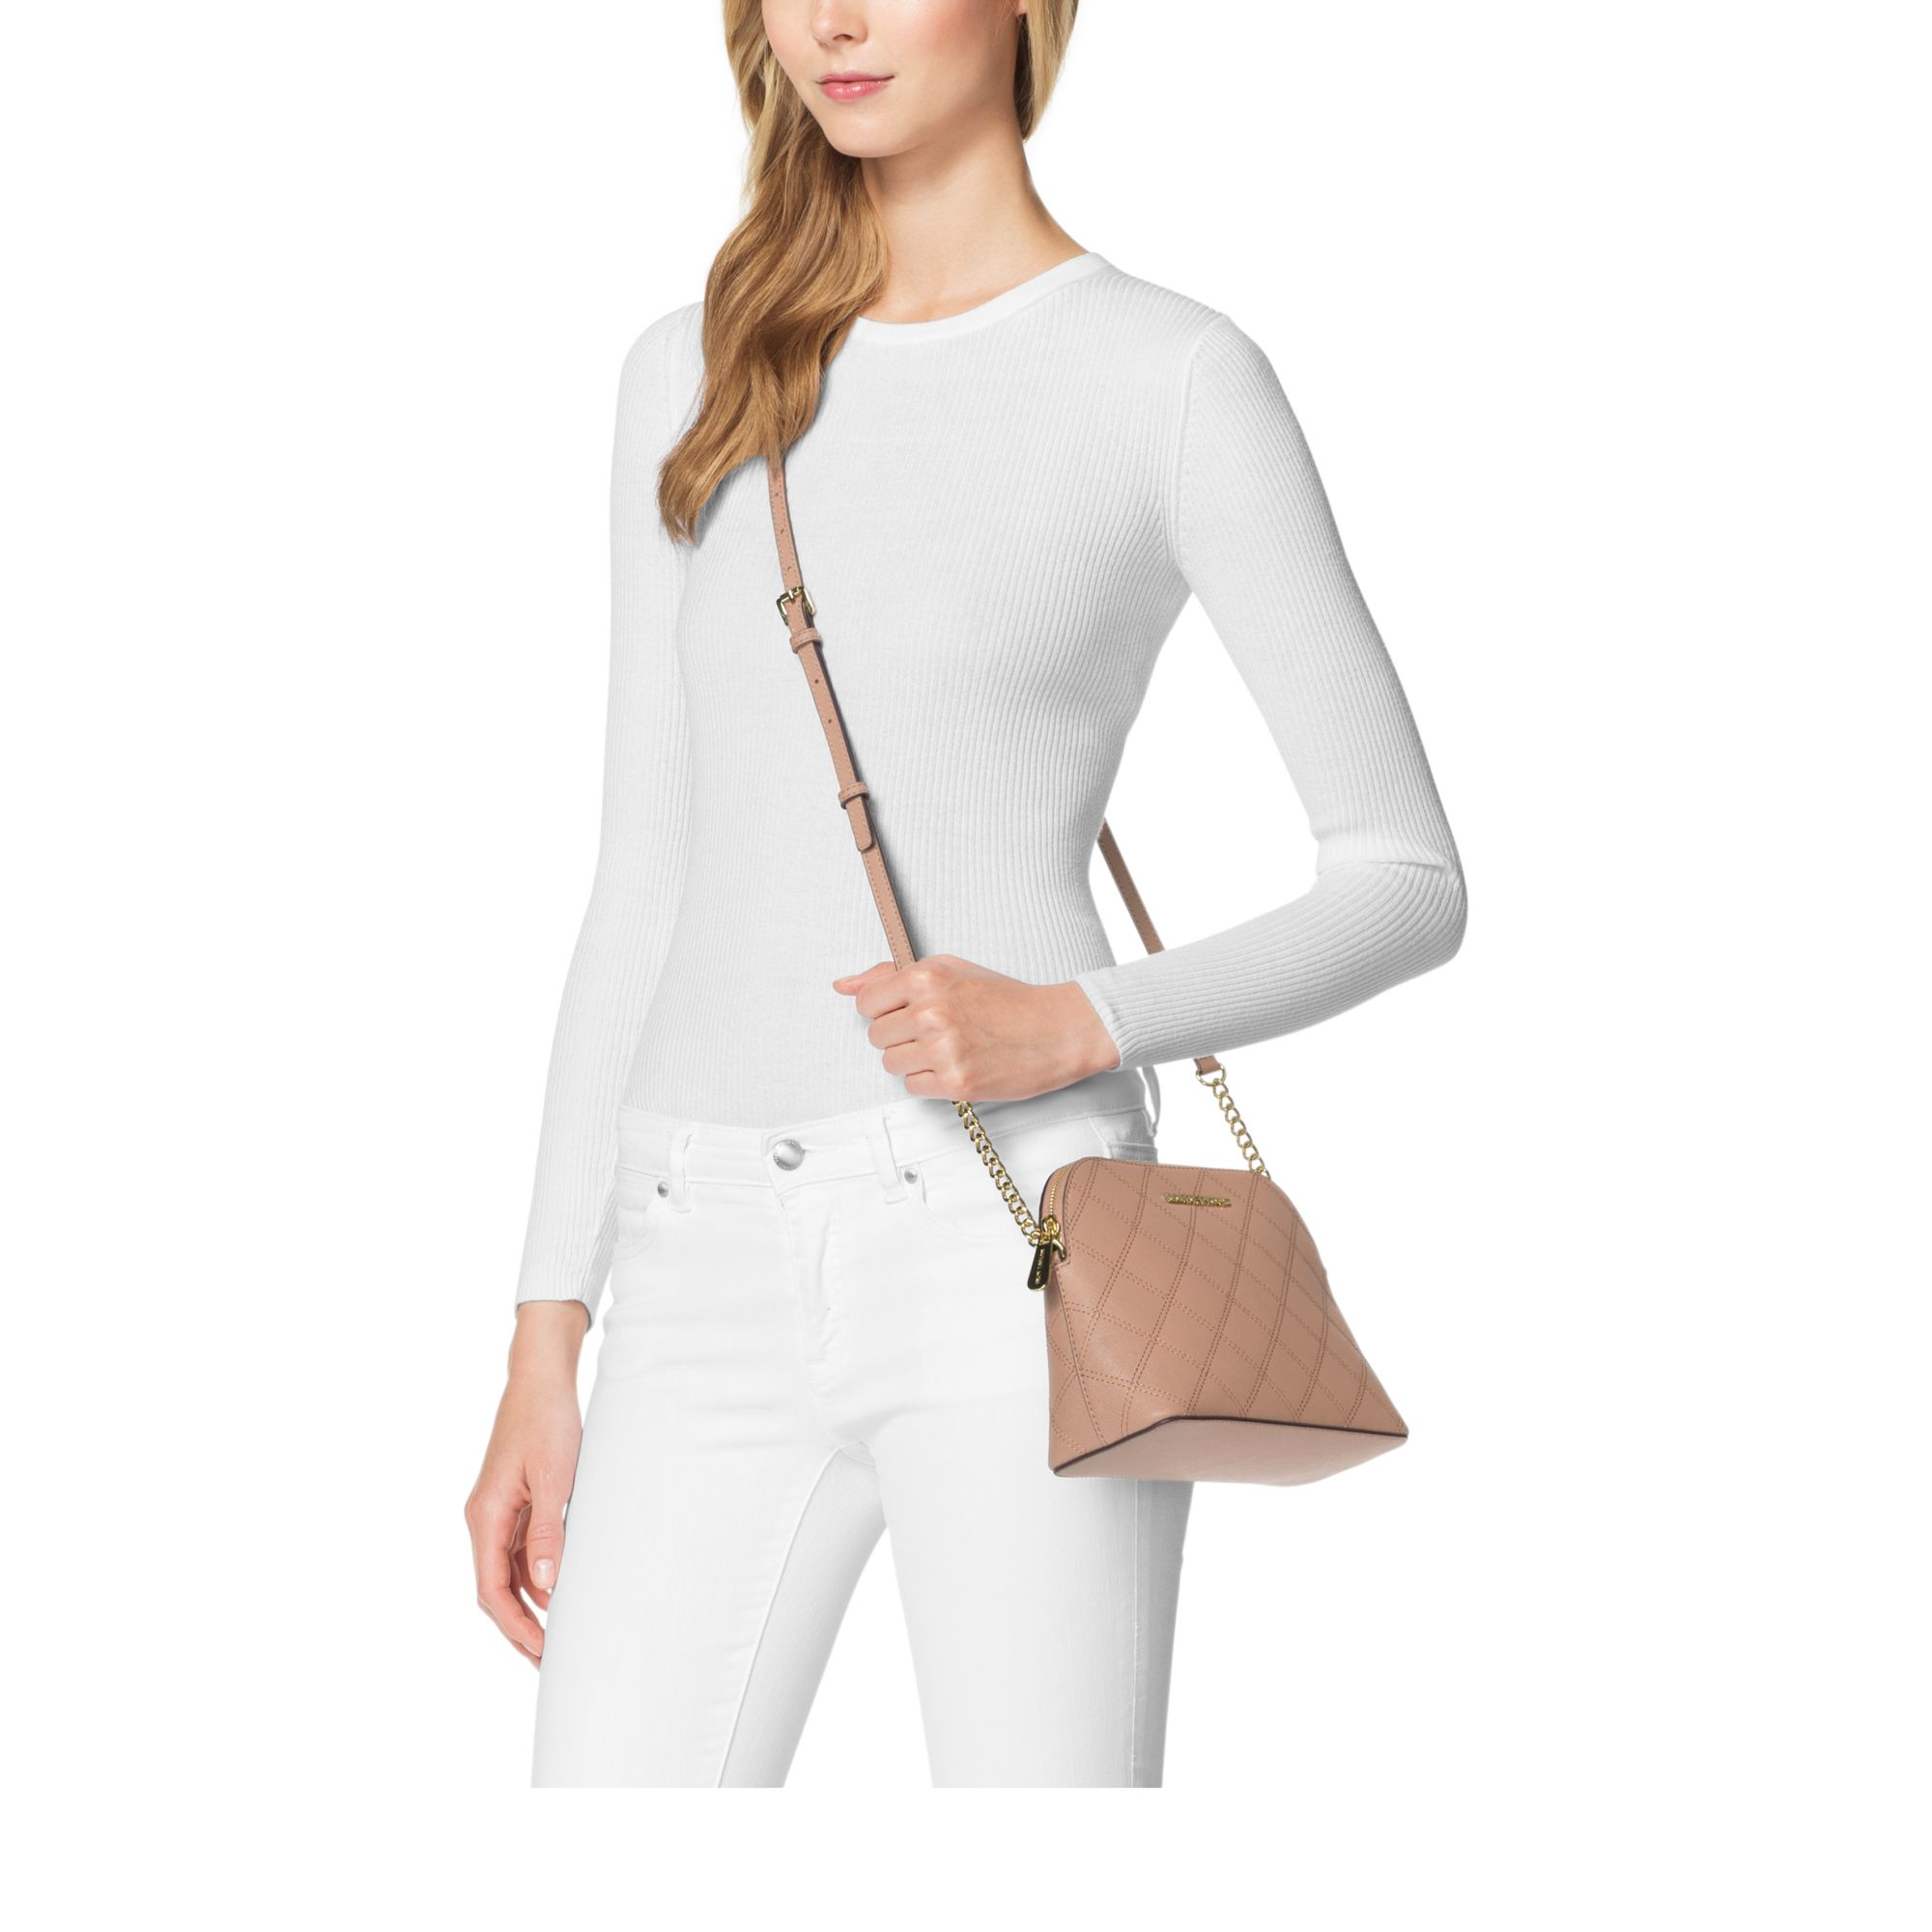 Lyst Michael Kors Cindy Large Saffiano Leather Crossbody